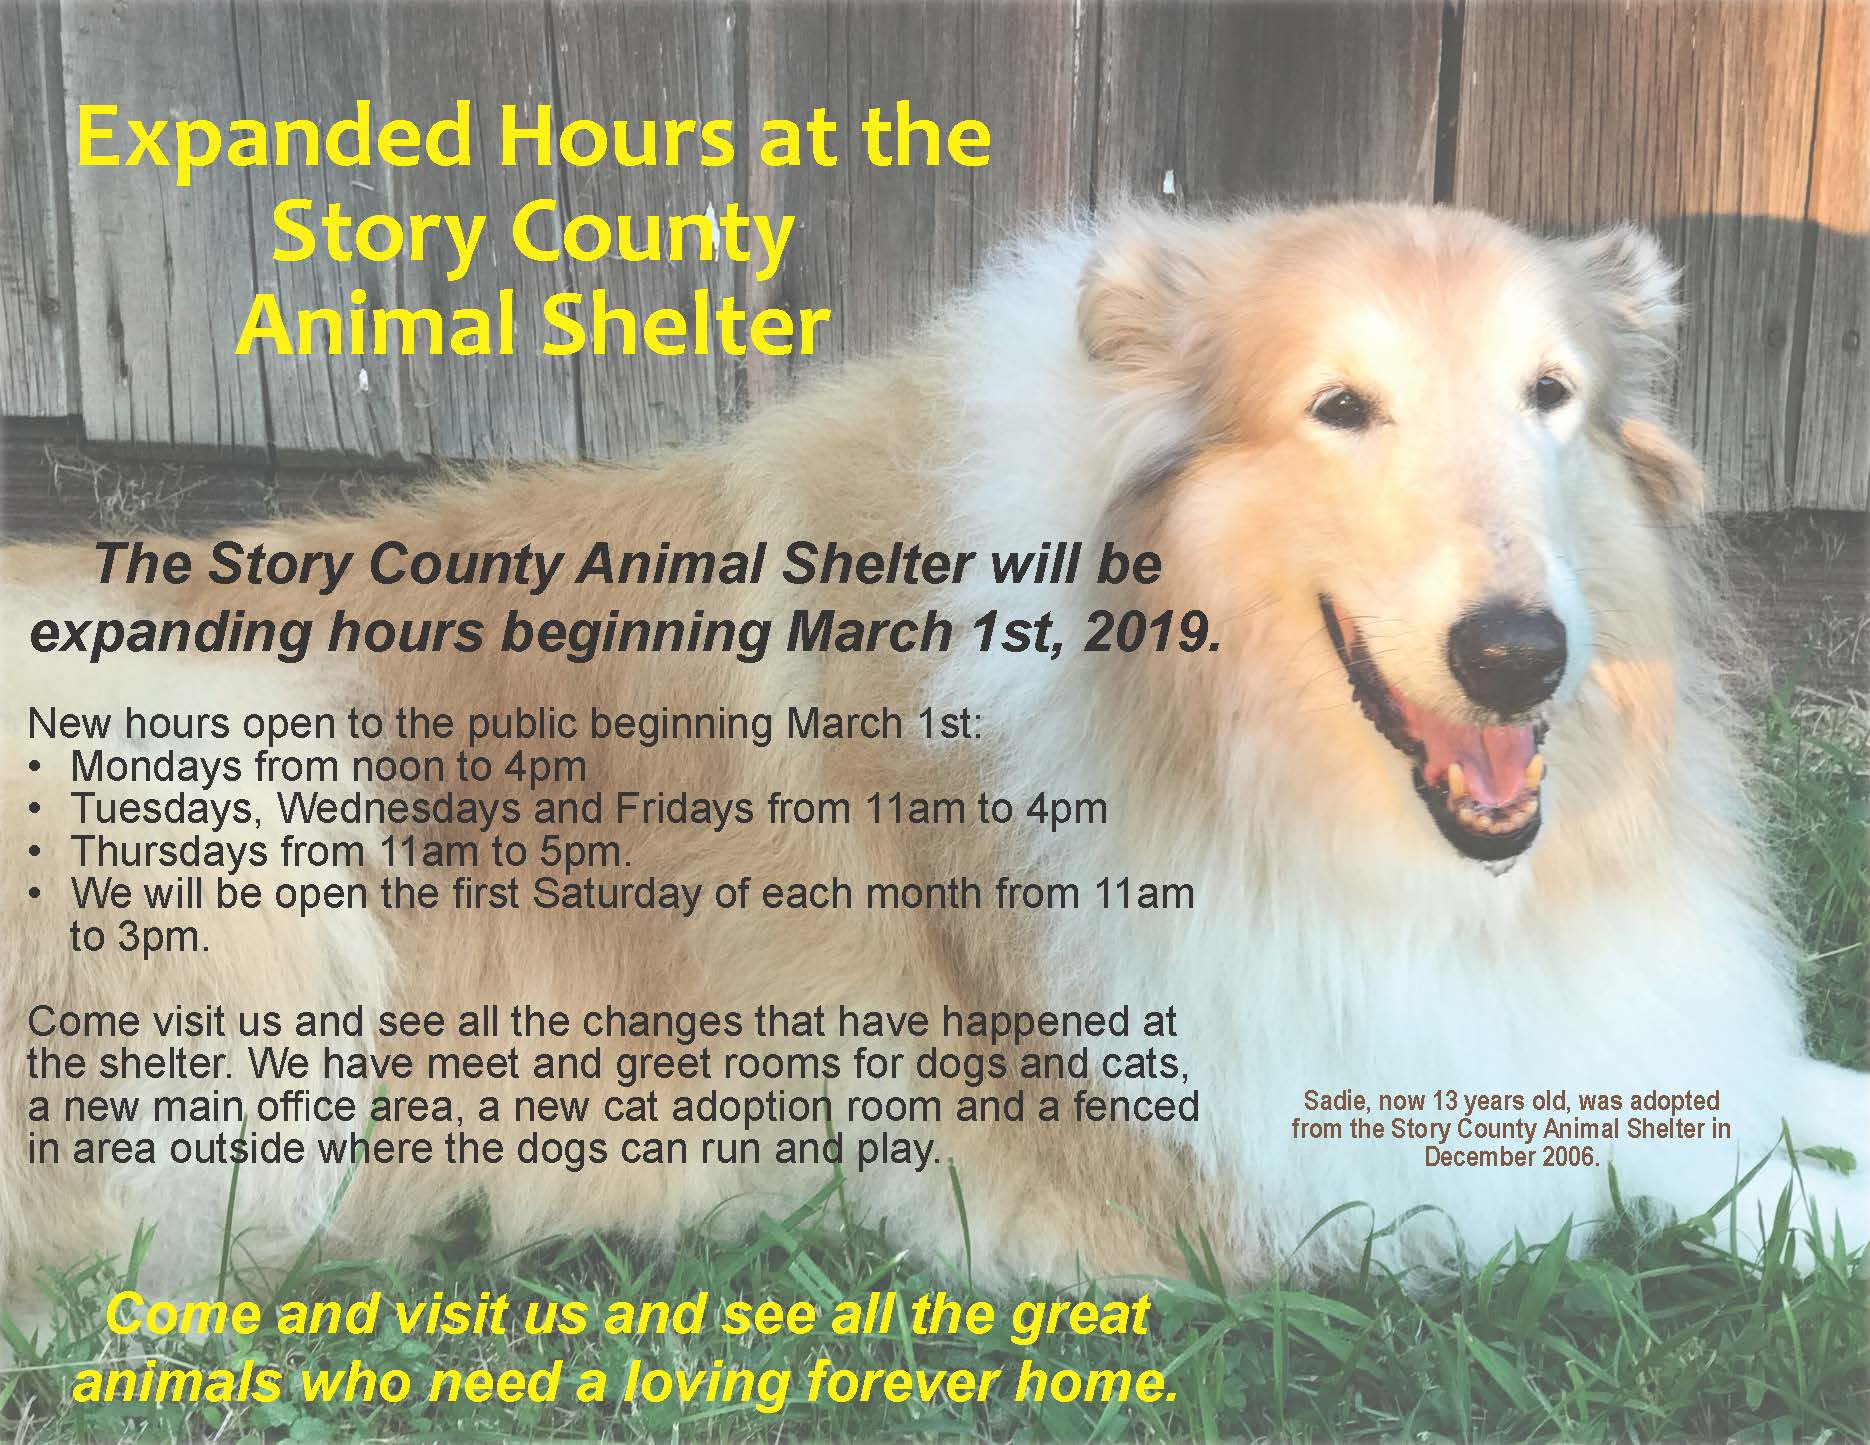 Extended Hours at Animal Shelter